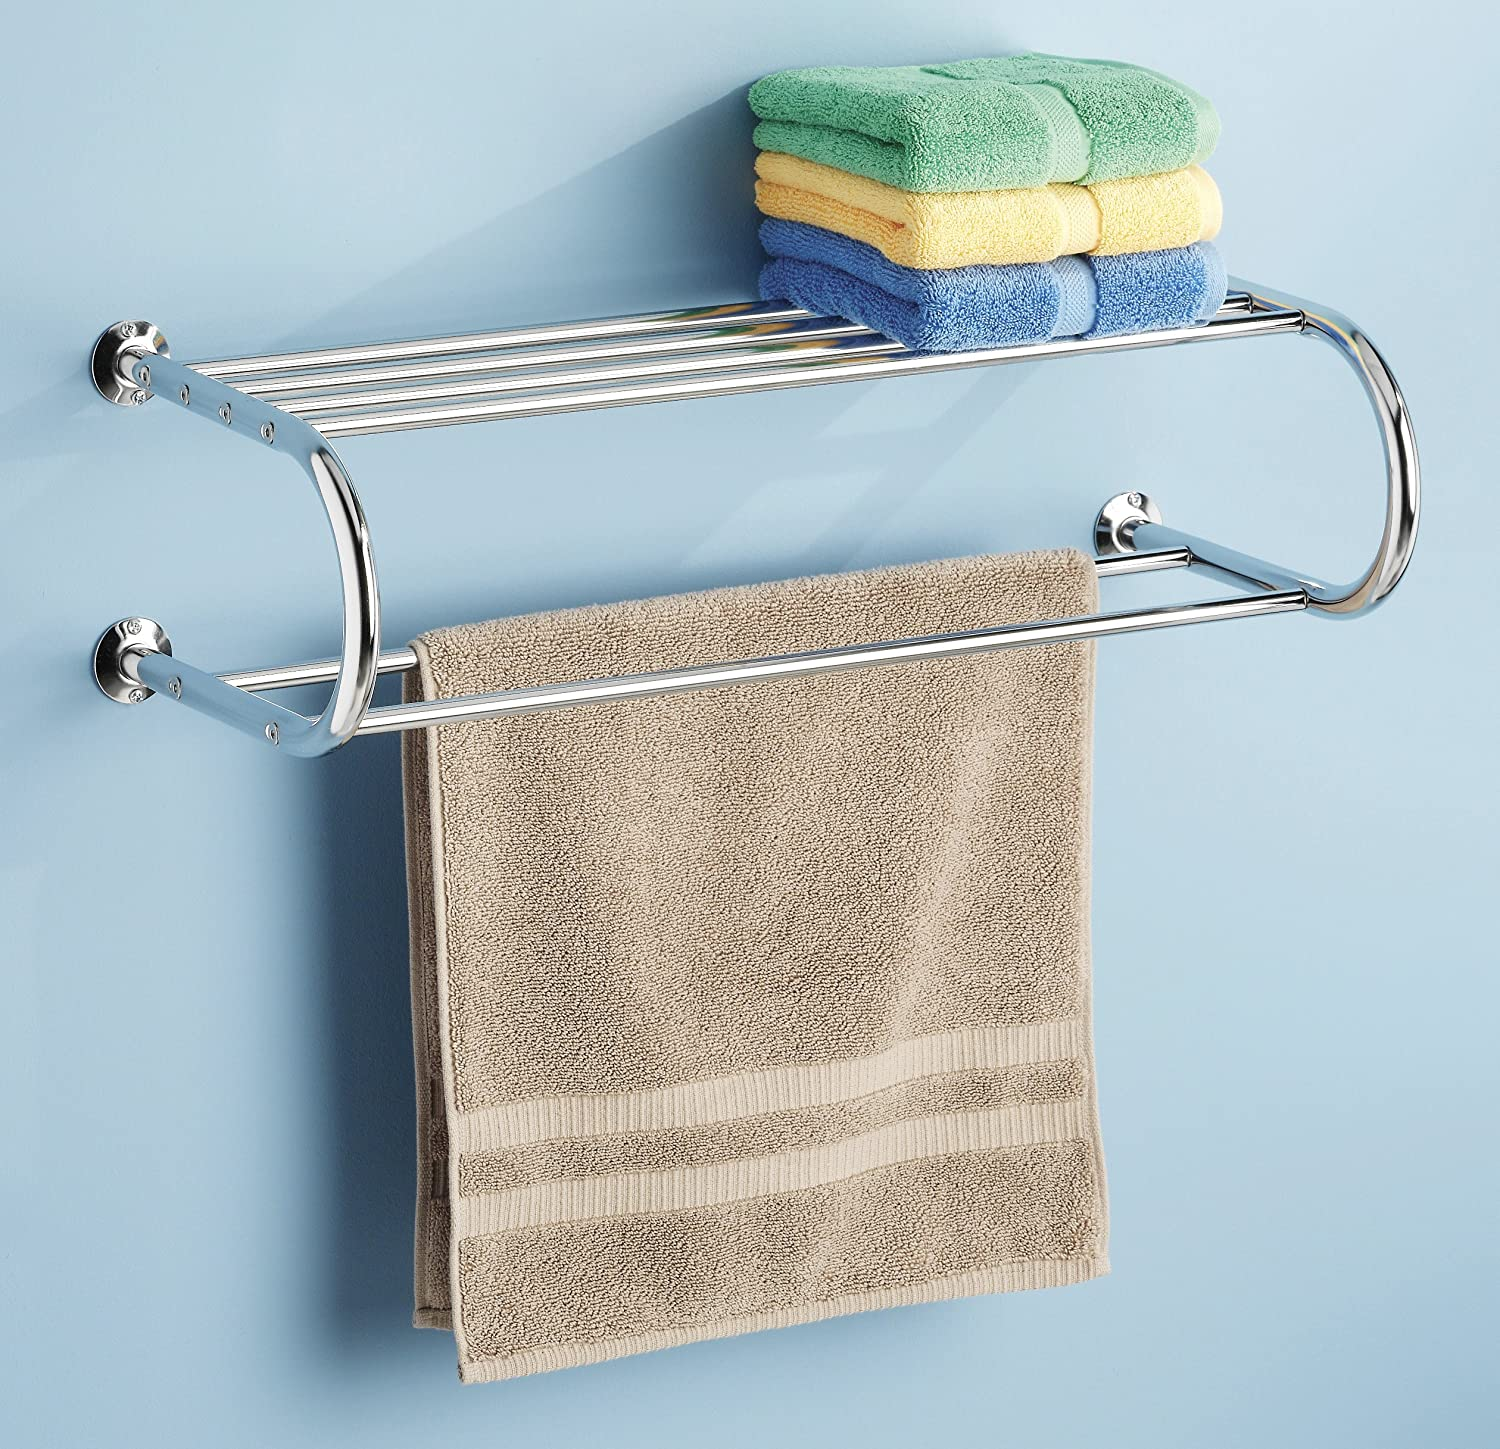 Stainless Steel Double Chrome Shelf and Towel Rack Wall Mount ...